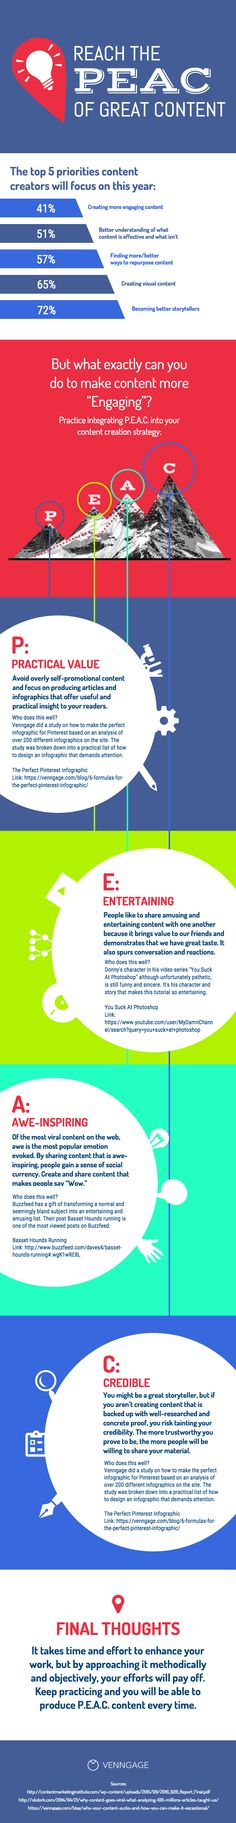 4 Ways to Make Your Content More Tempting (infographic)